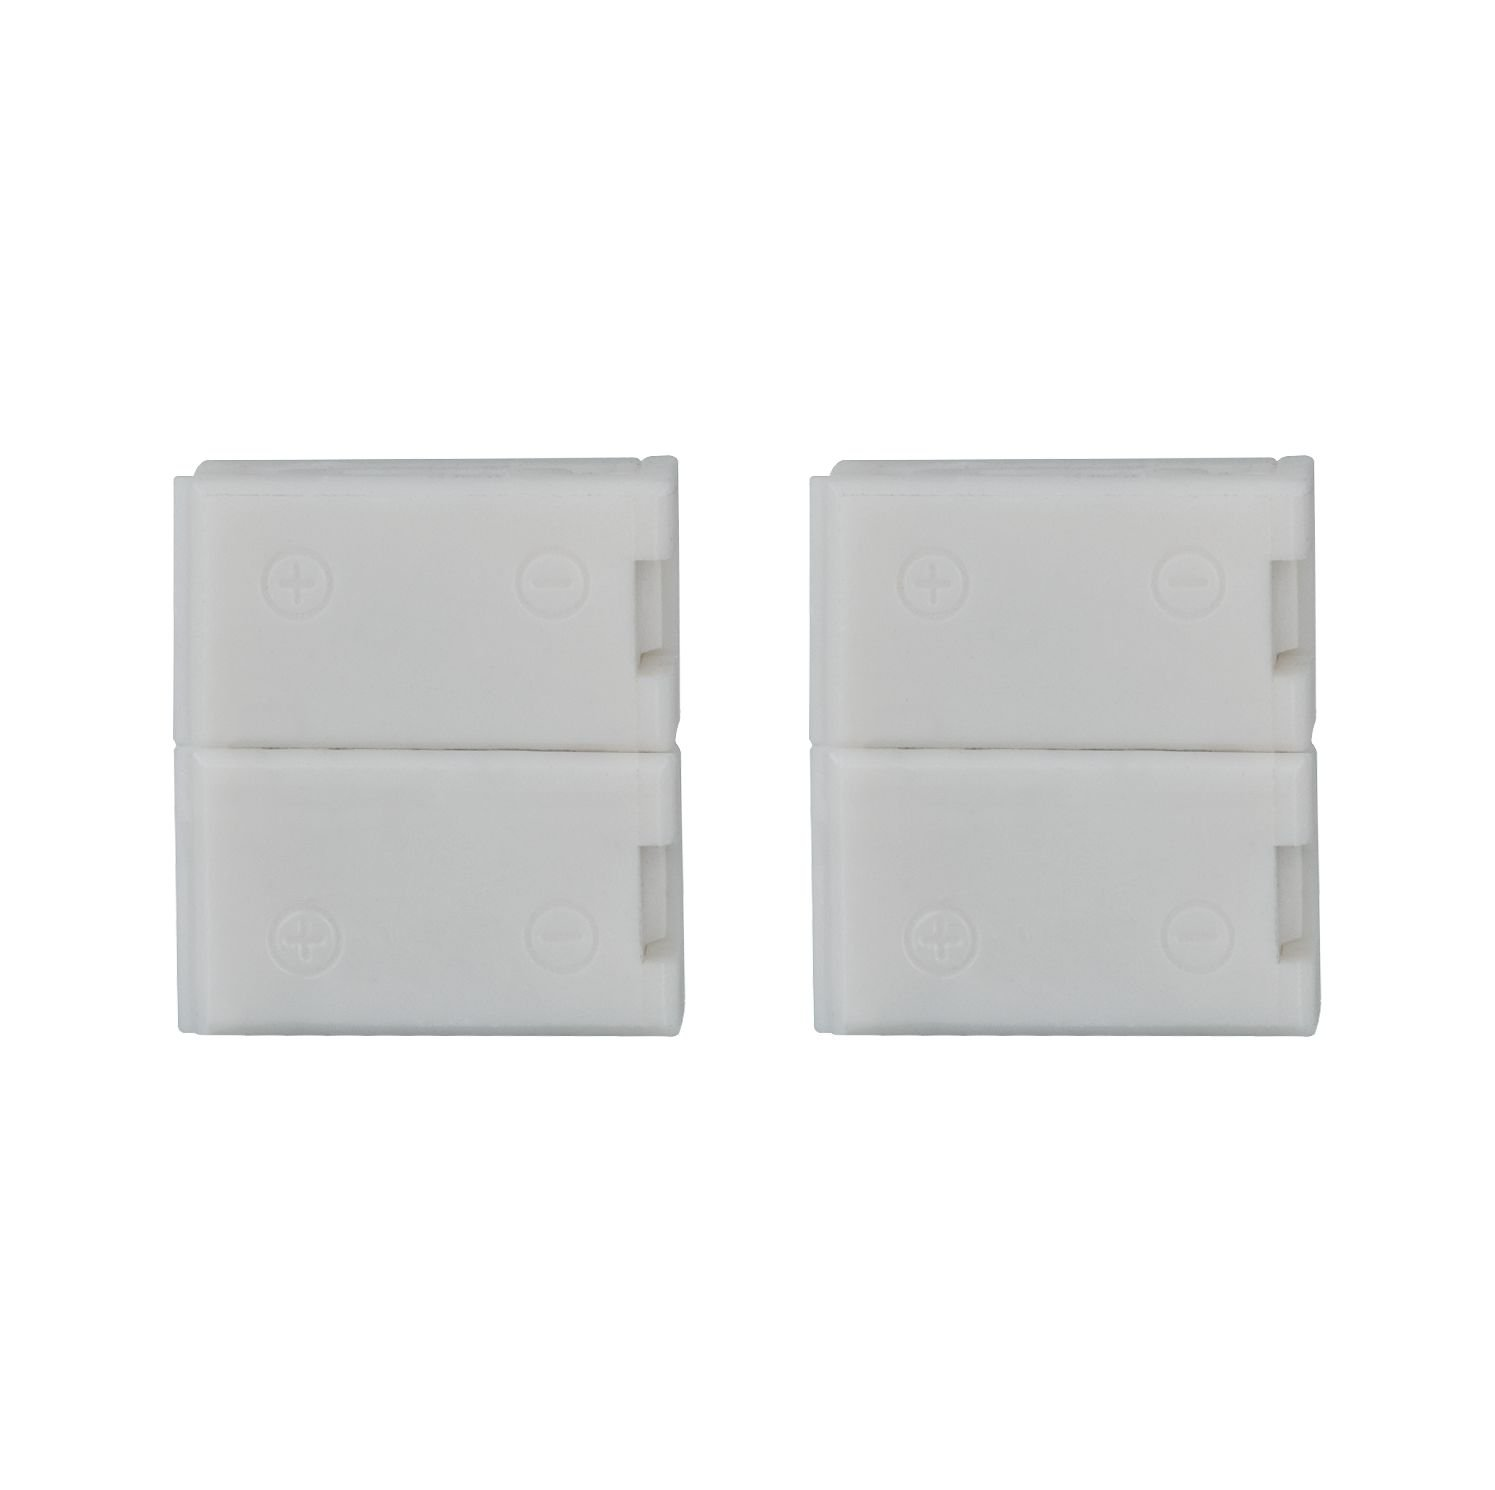 YourLED ECO Verbinder 13,5x14mm max. 60W Weiß